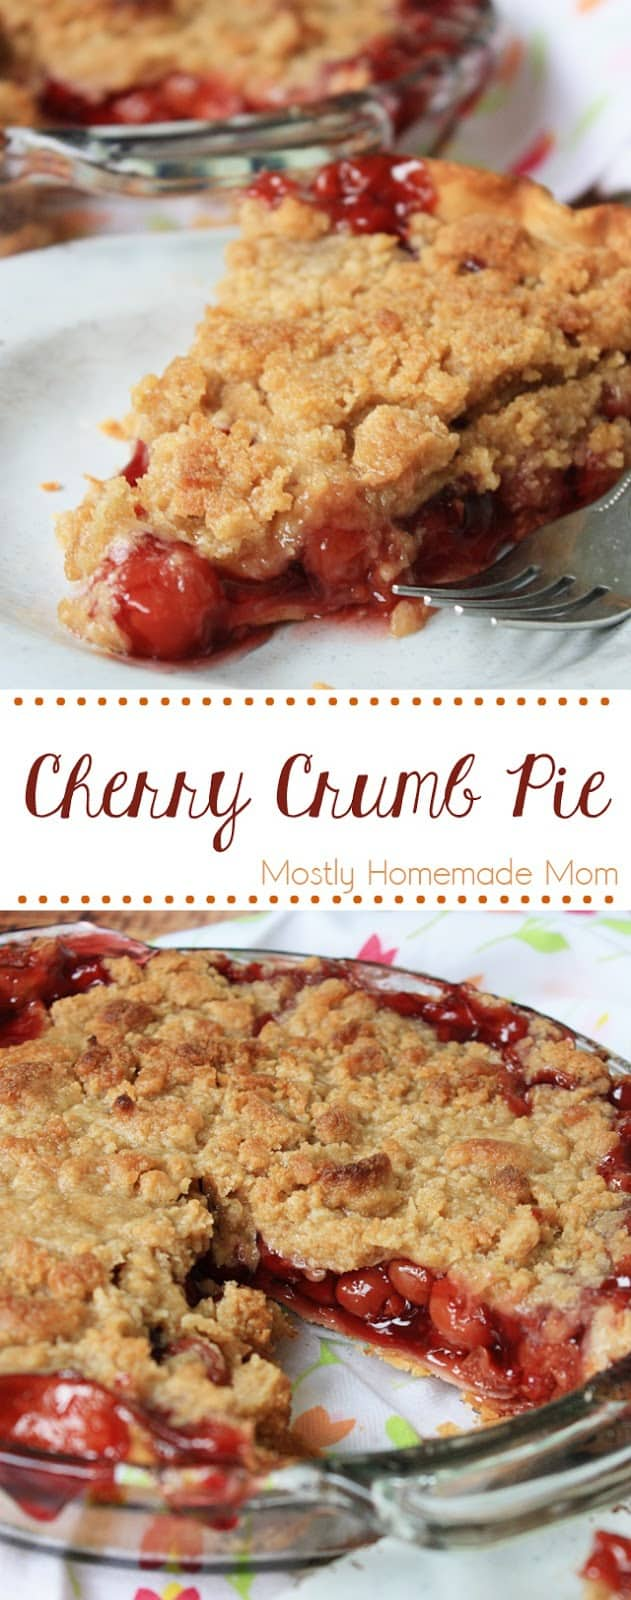 Cherry Crumb Pie - Cherry pie filling with almond extract topped with a homemade crumb topping and baked until bubbling - perfect pie year round!